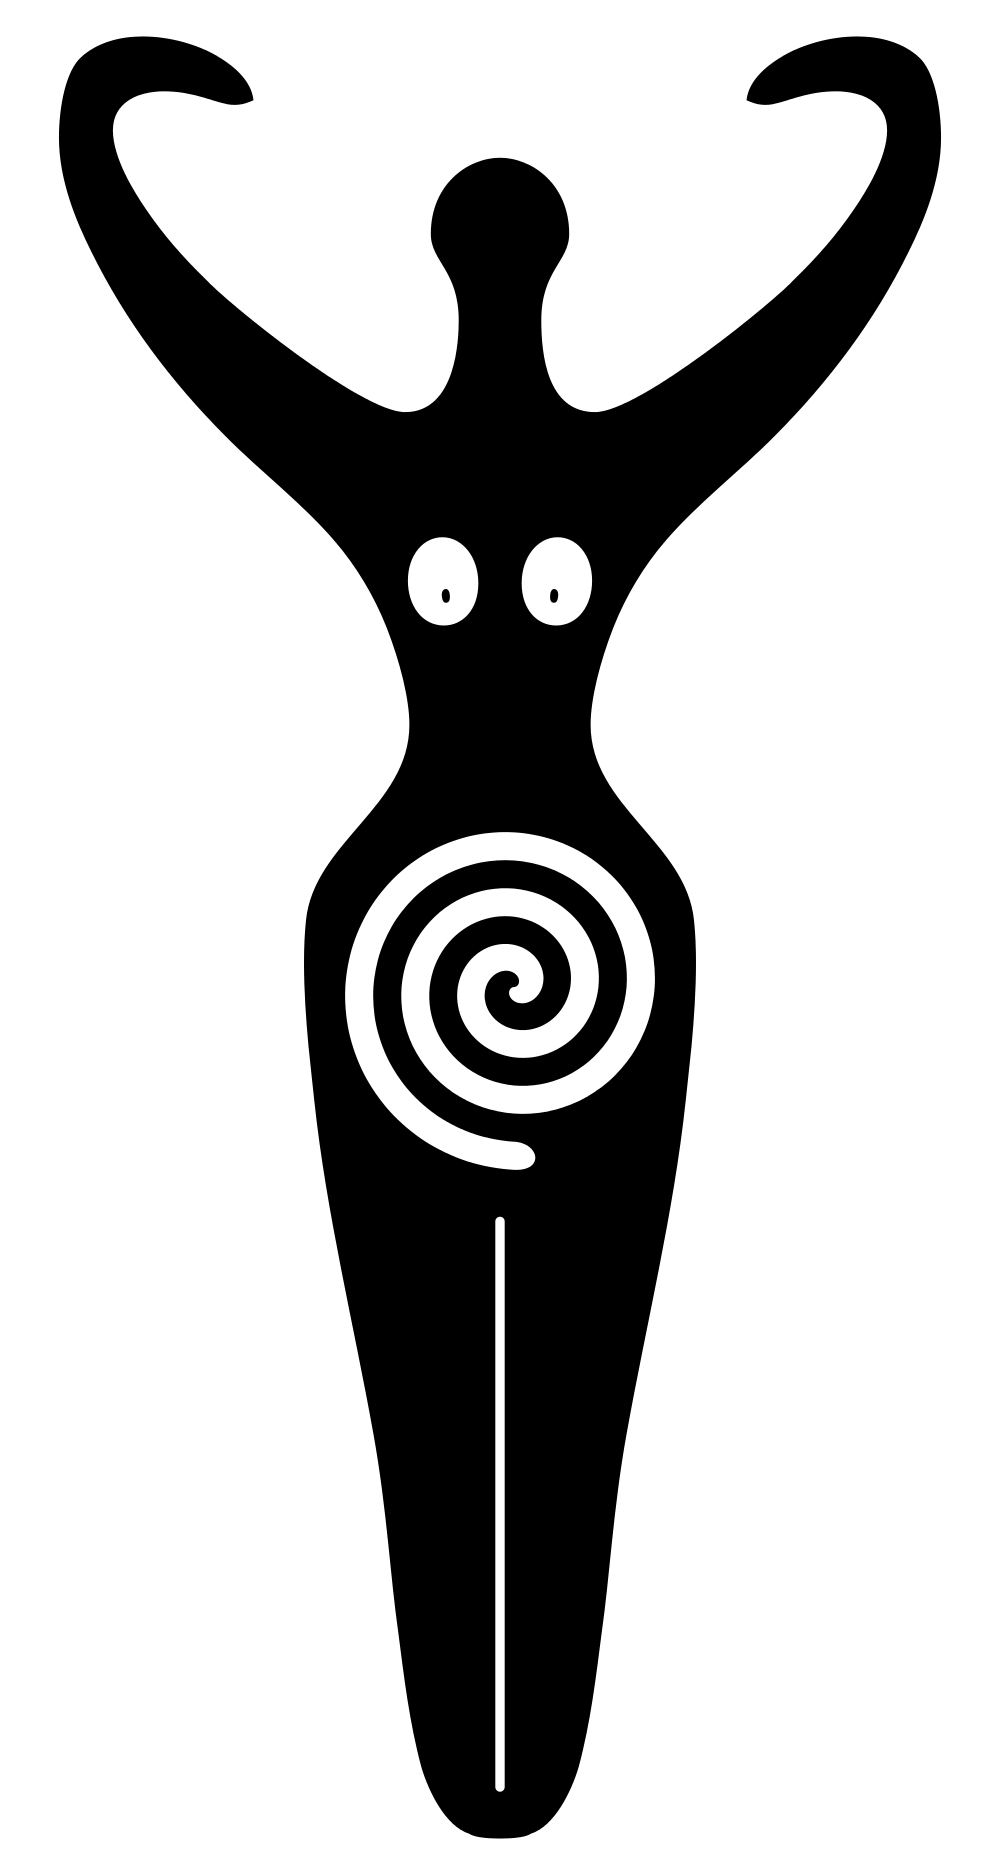 A Spiral Goddess Symbol Of Modern Neopaganism Used By The Goddess